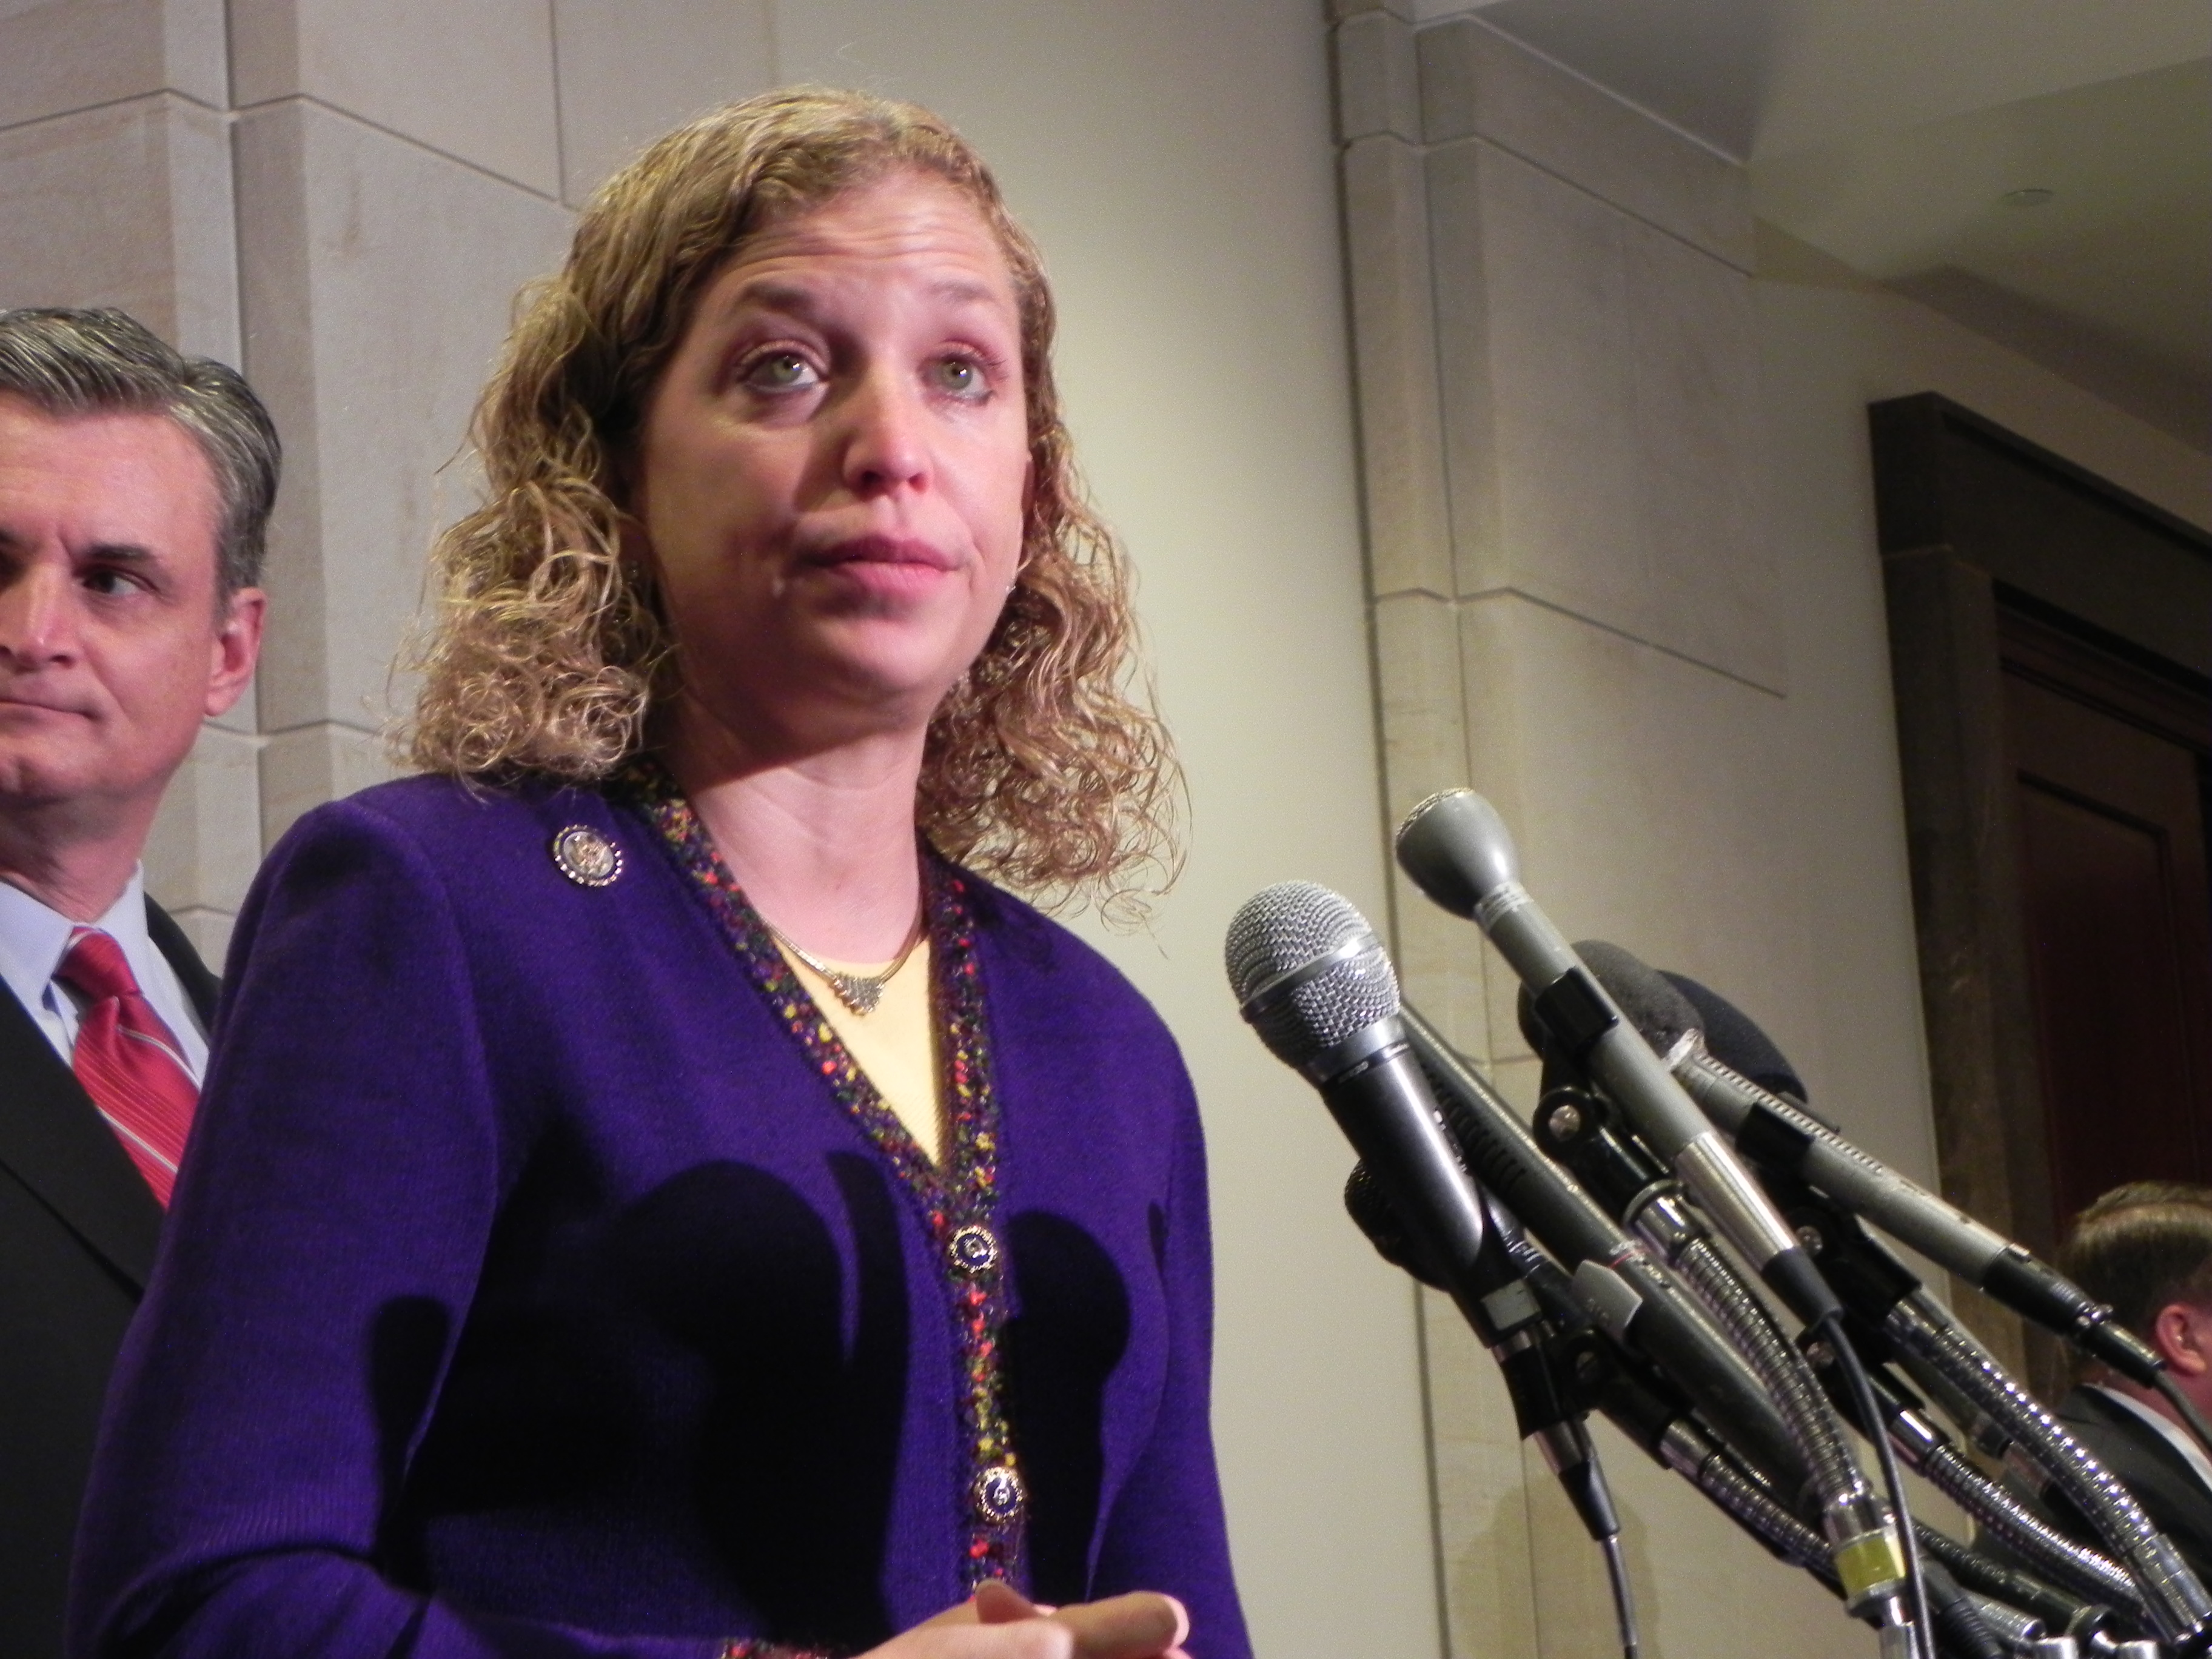 DNC And Debbie Wasserman Schultz Give Ambivalent Clintonites The Holiday Bern